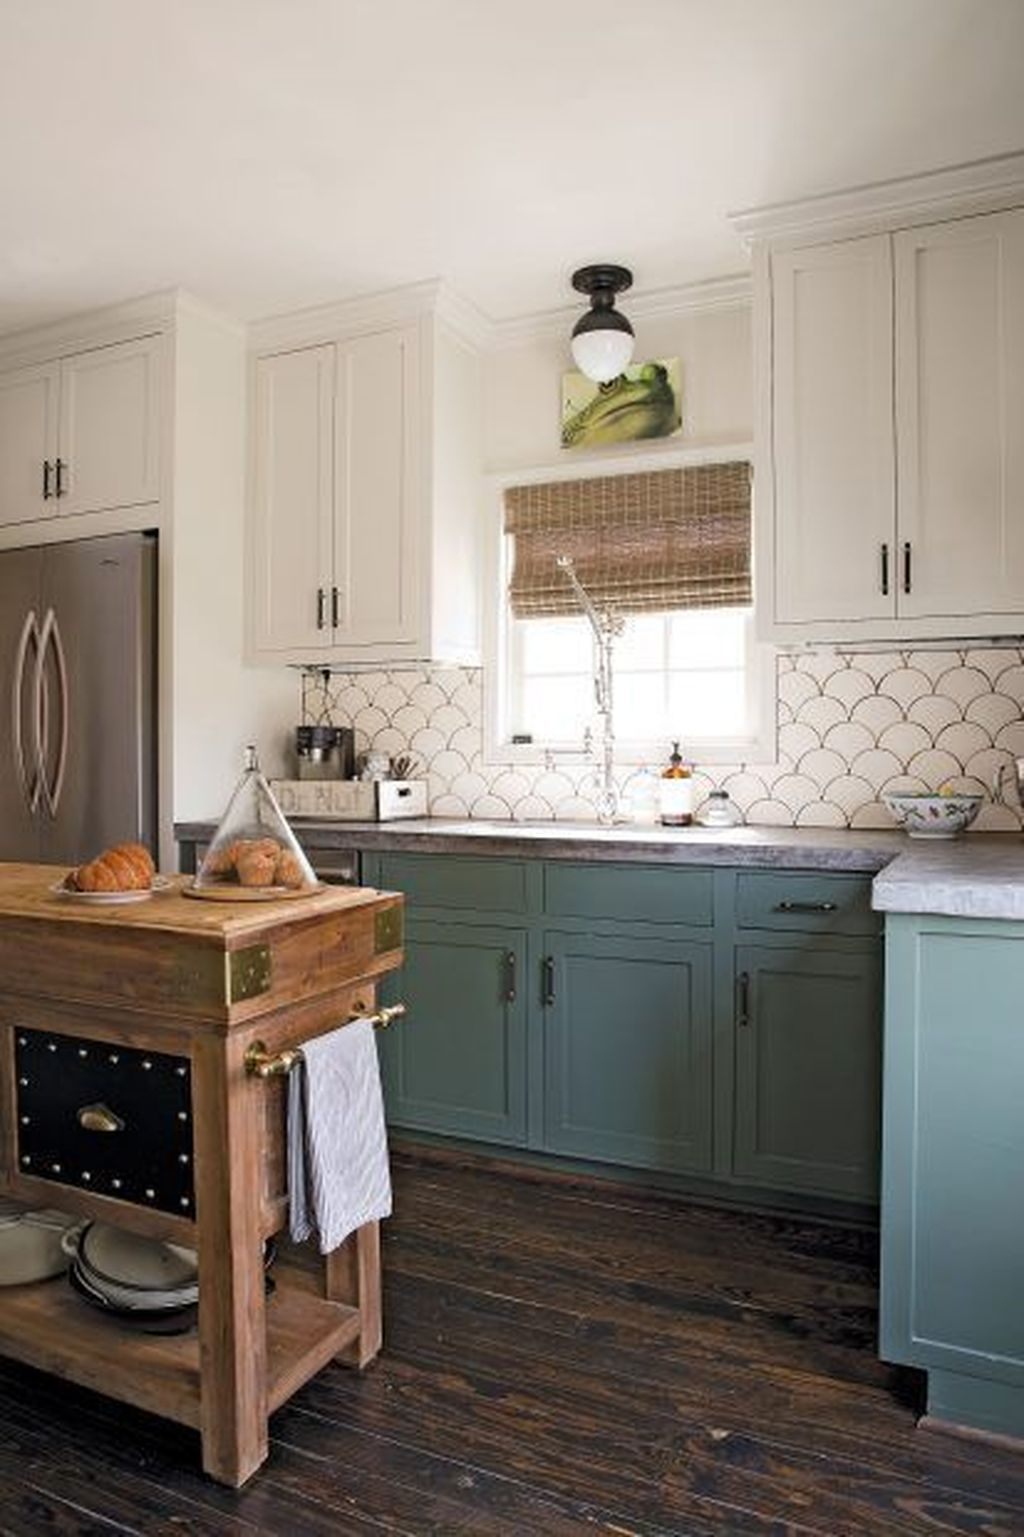 Popular Wooden Cabinets Design Ideas For Your Kitchen Decor 28